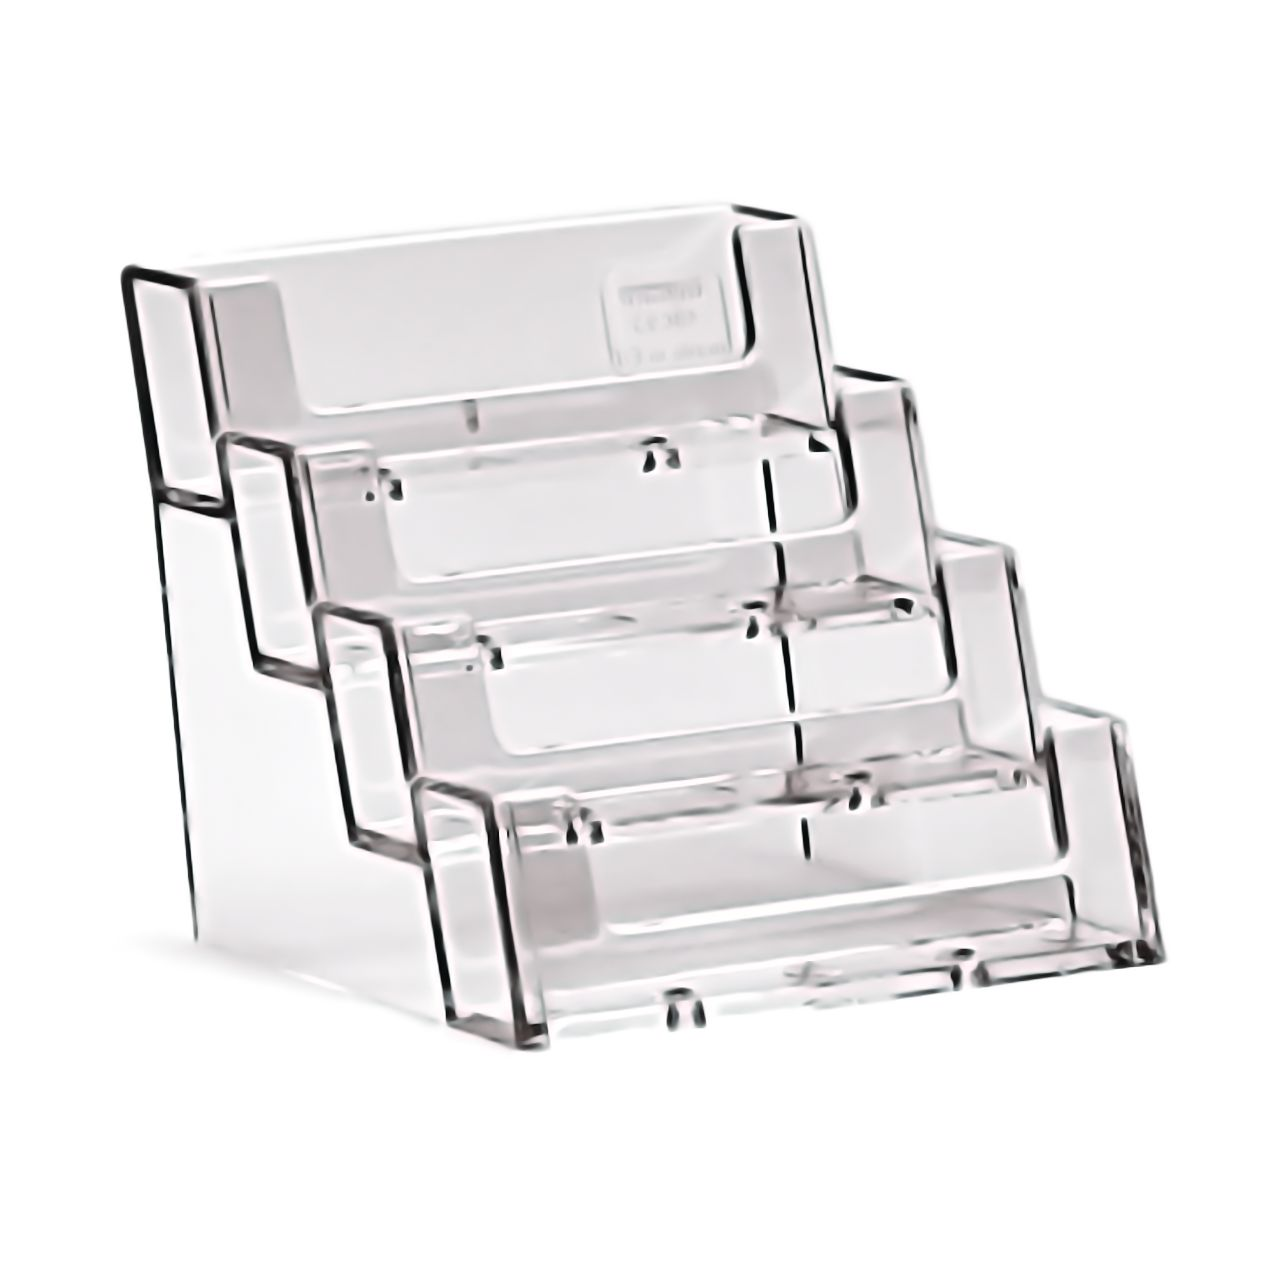 4 Compartment Business Card Holder 4BC93 - Modern Signs